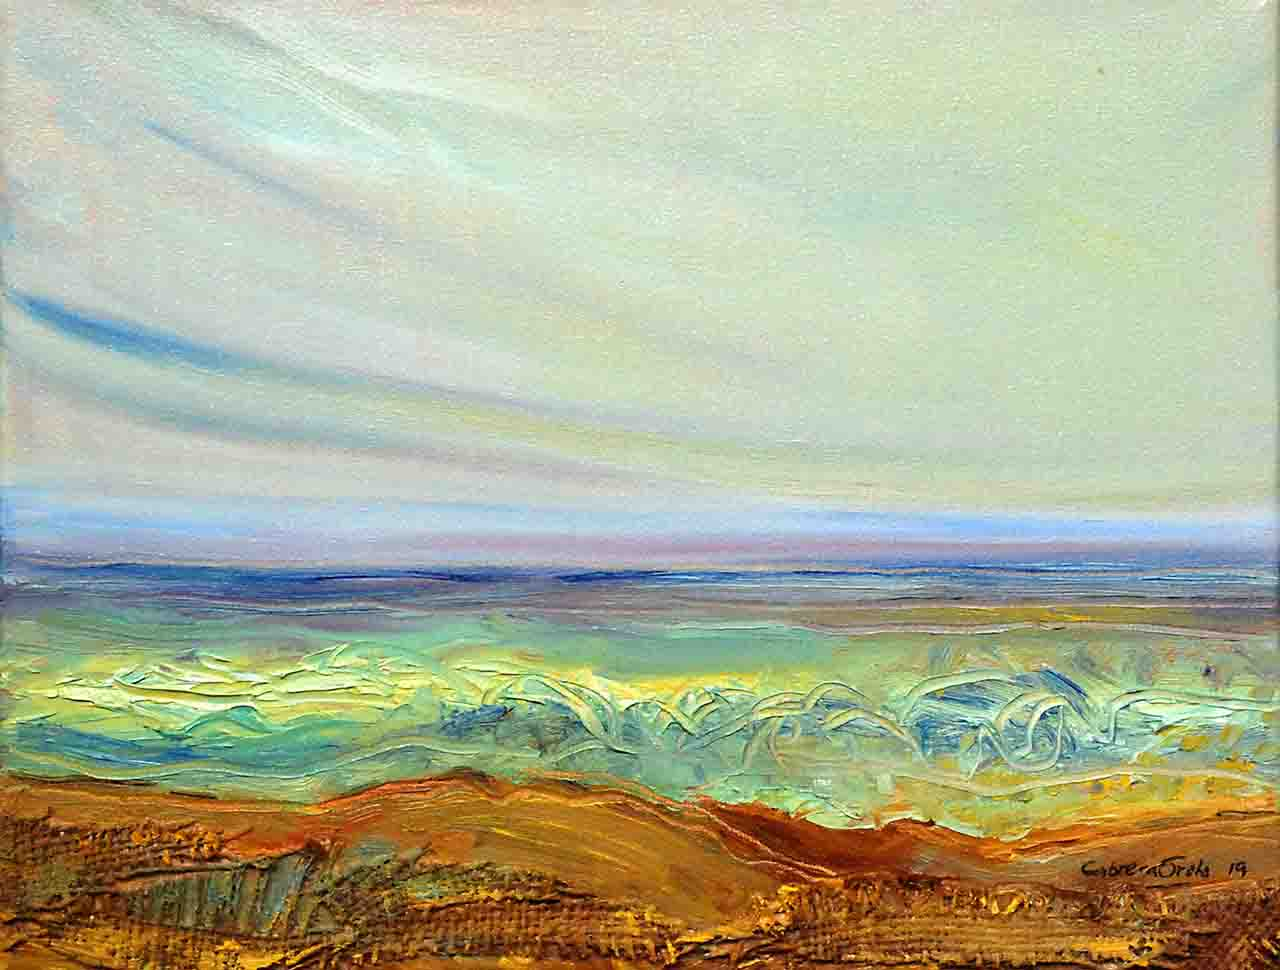 abstract painting oil on canvas, seascape,sale,buy,cheap